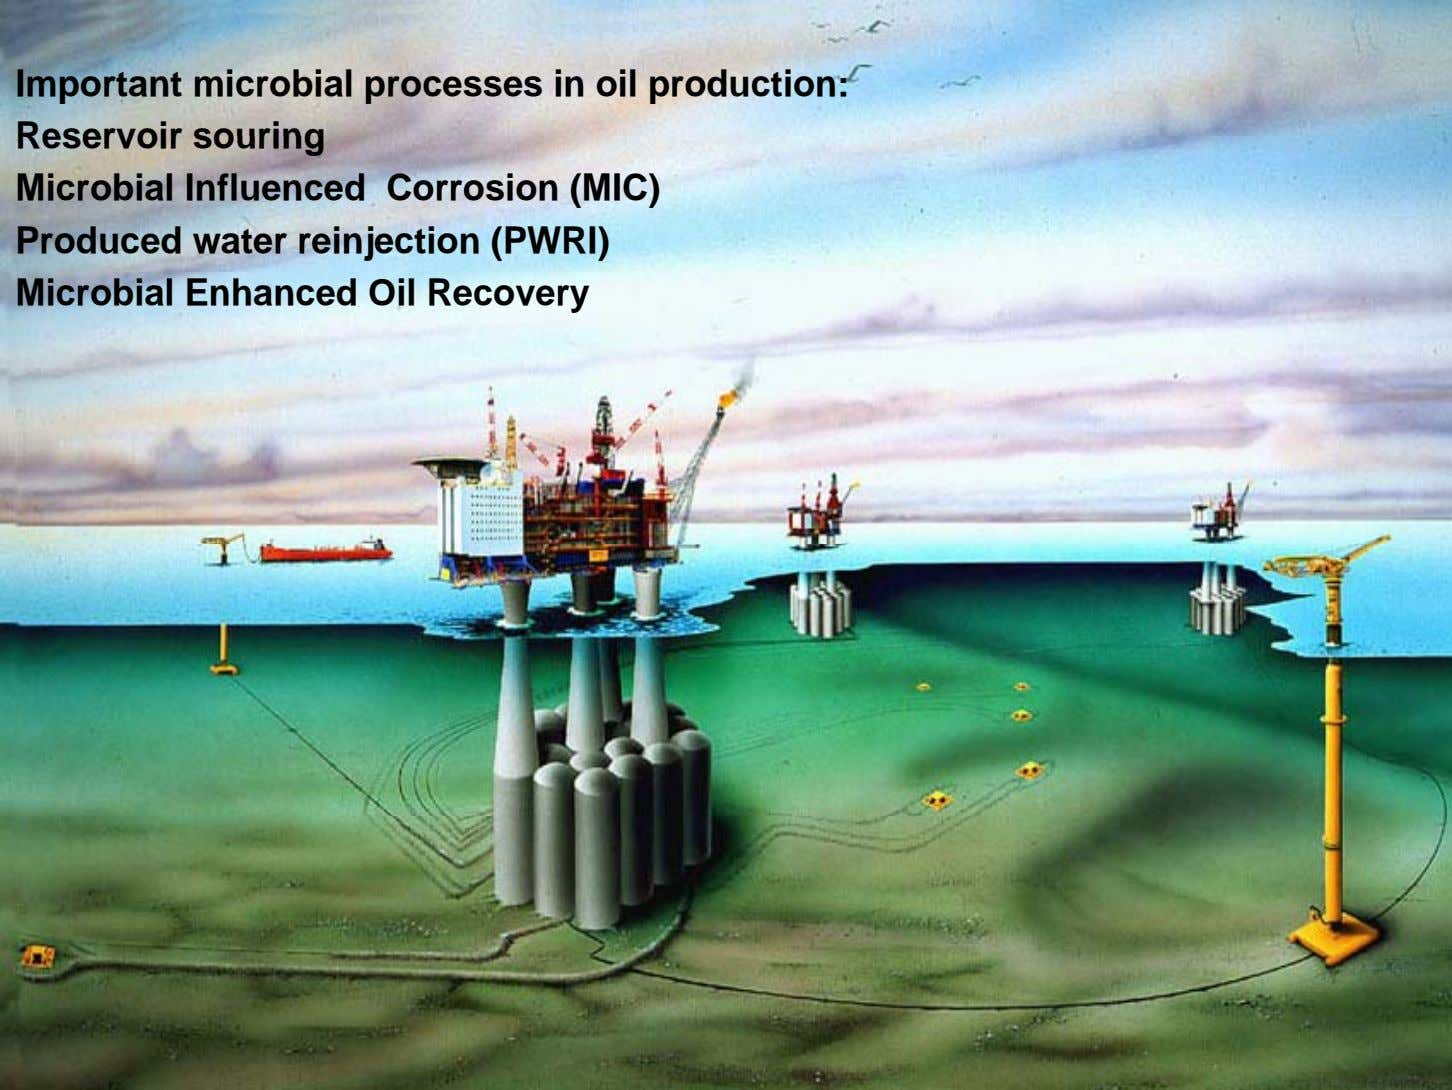 Important microbial processes in oil production: Reservoir souring Microbial Influenced Corrosion (MIC) Produced water